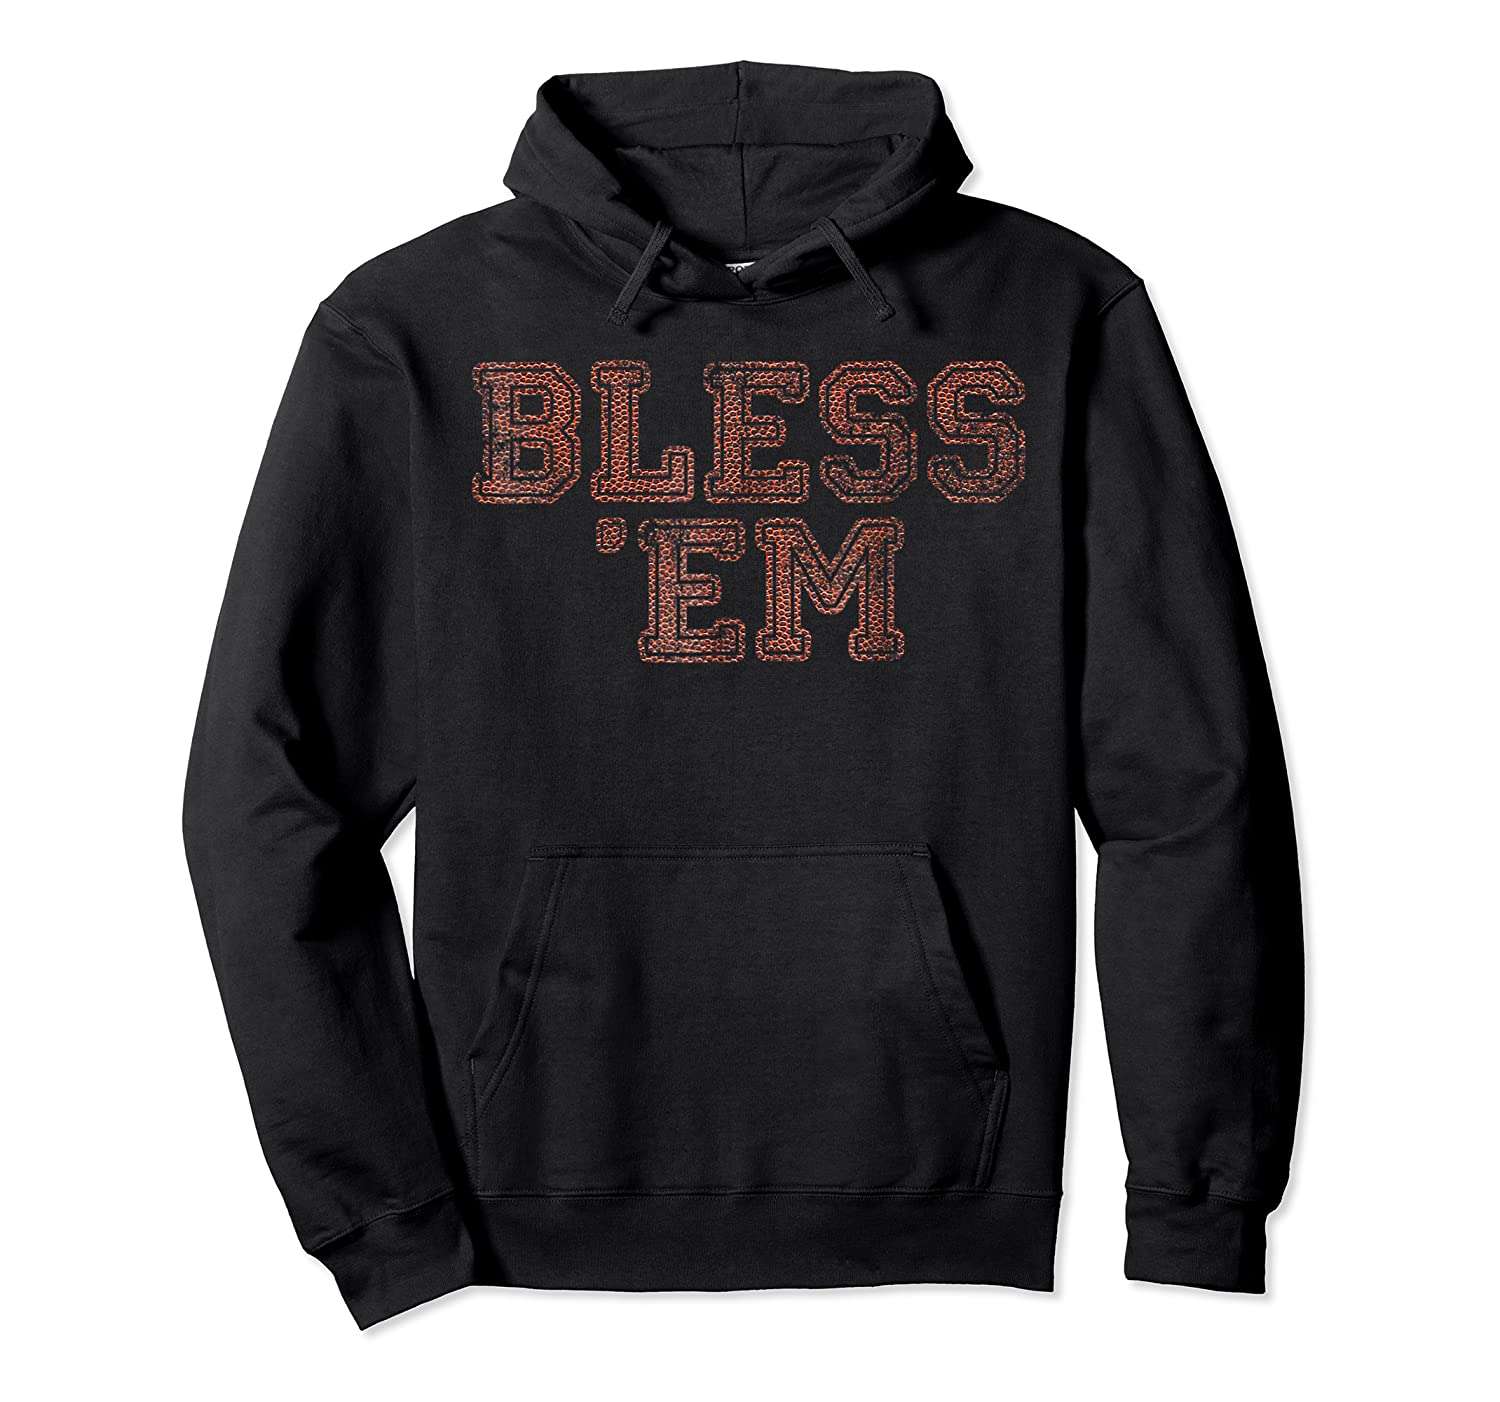 Bless 'em - Funny Cleveland Sports T Shirt Unisex Pullover Hoodie